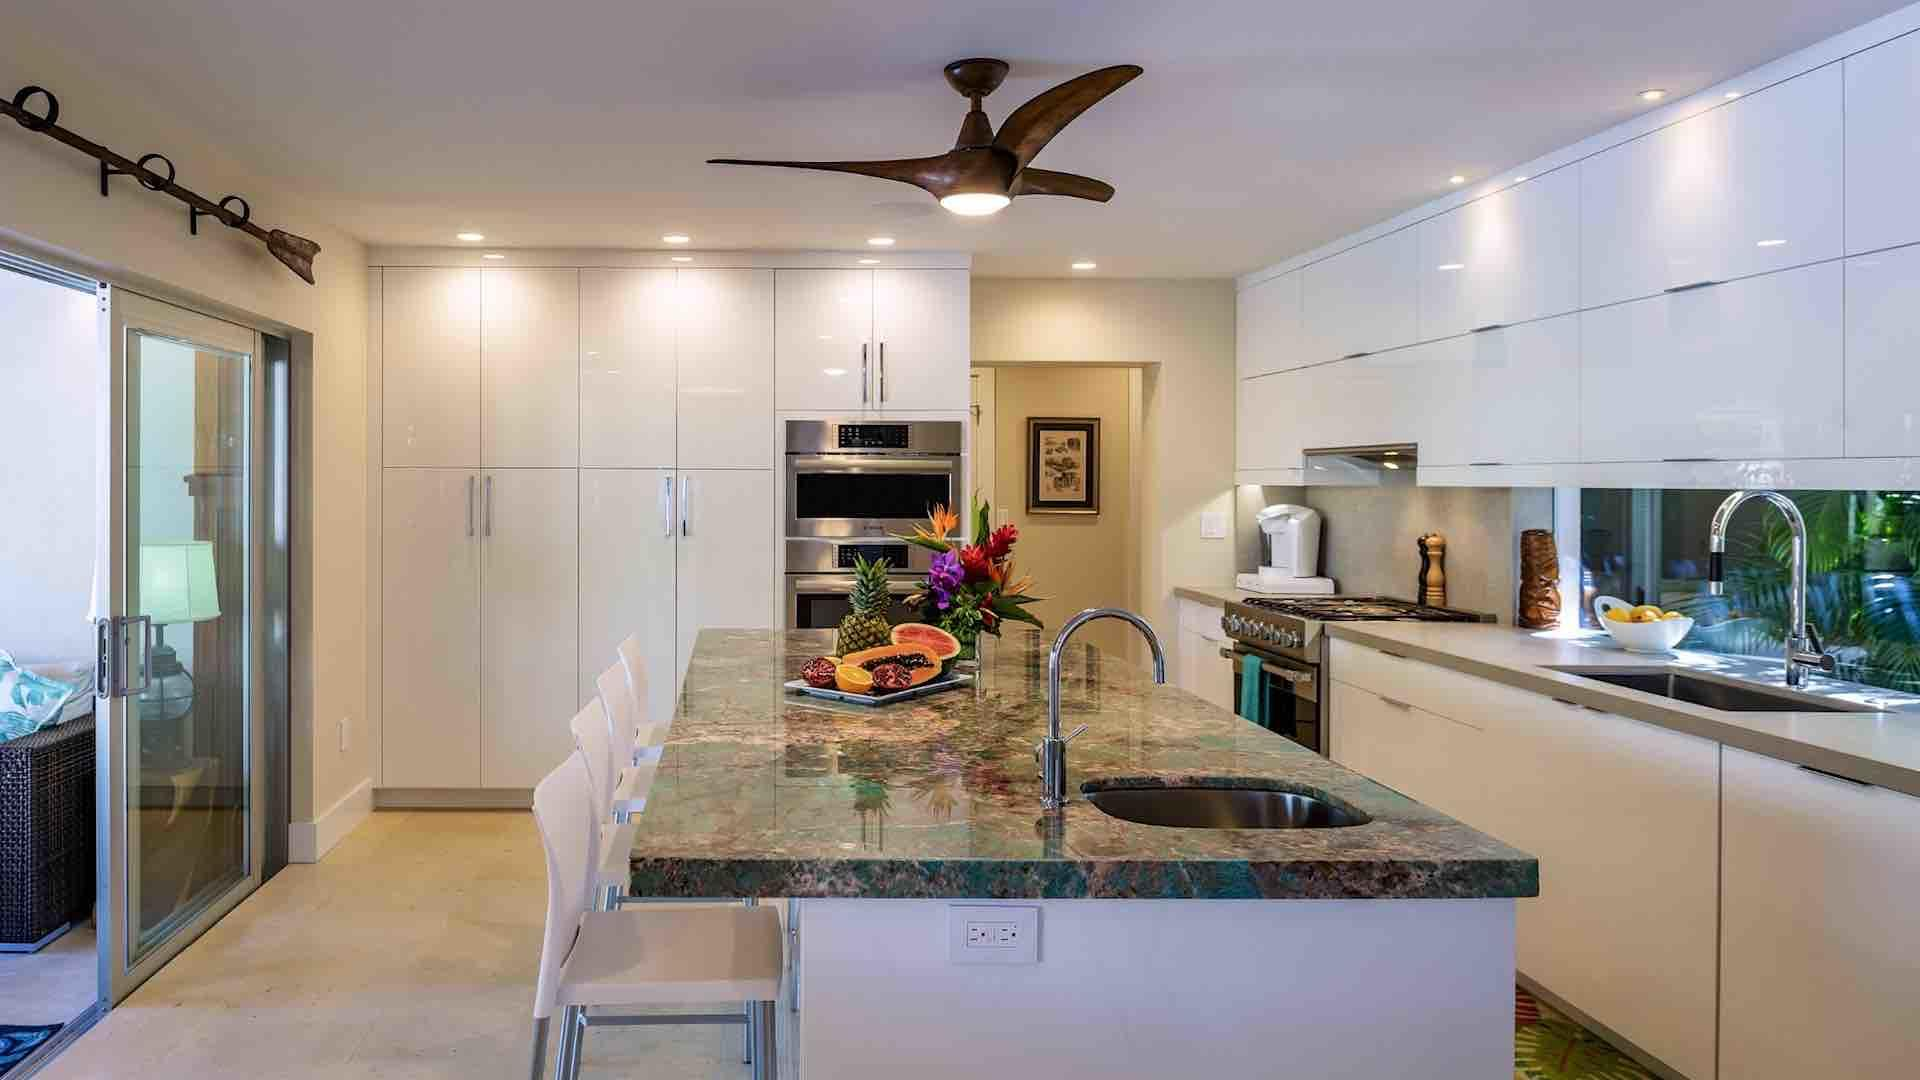 The completely renovated kitchen is fully equipped with all of the tools and appliances you'll need to whip up a home cooked meal...